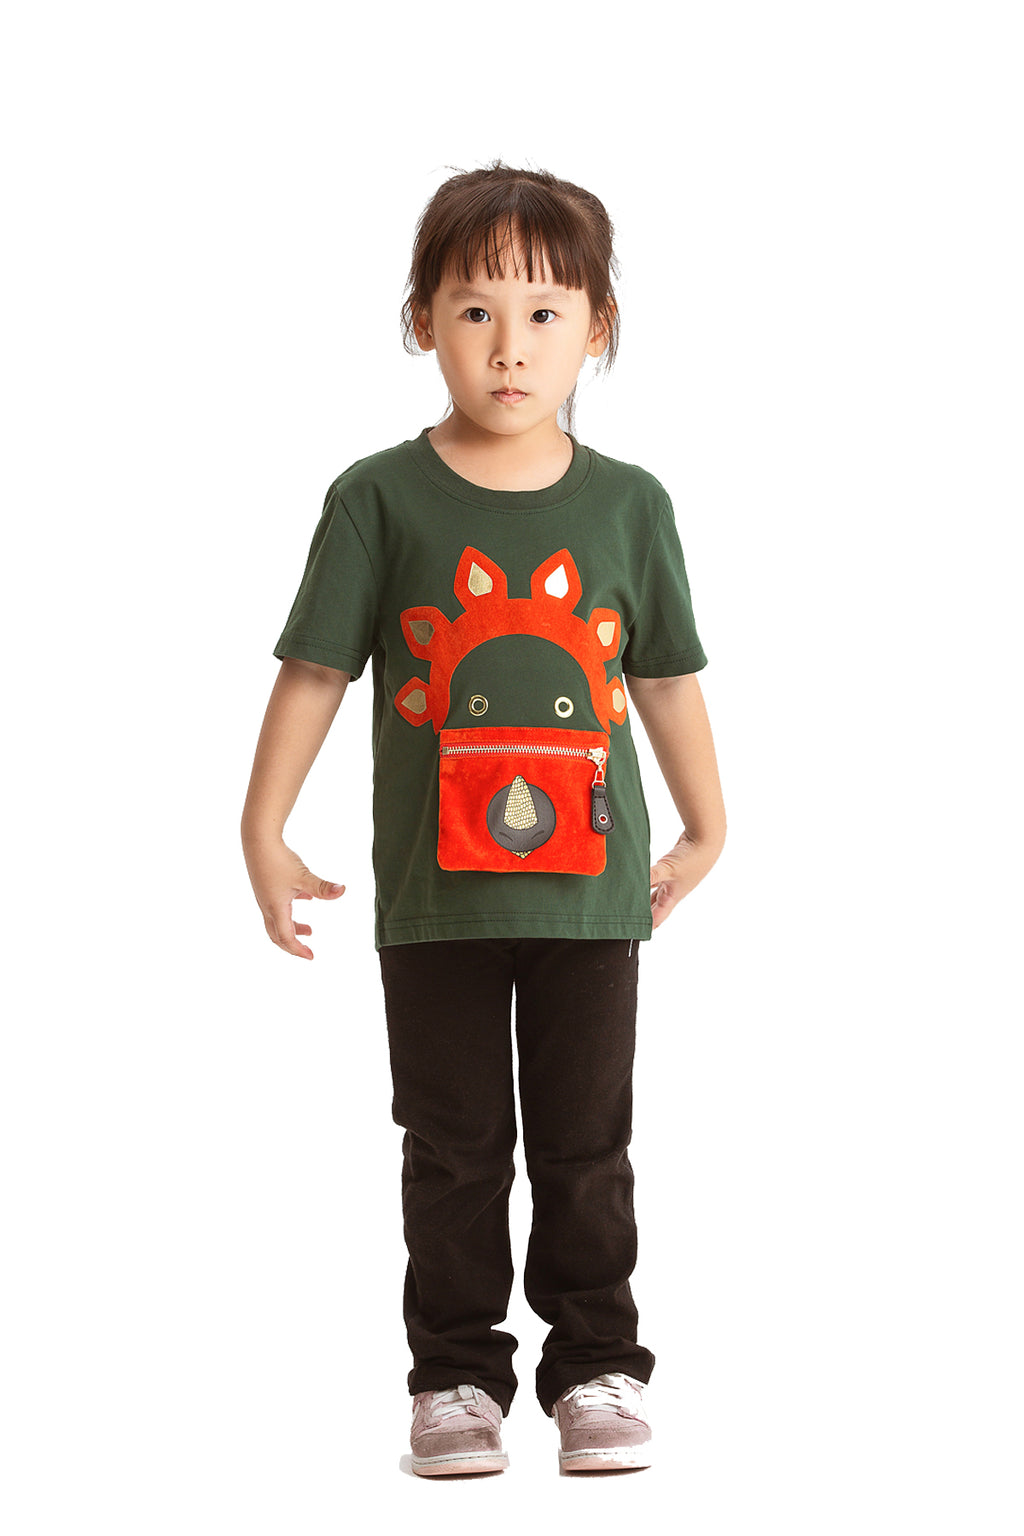 Little Mons T-Shirt for Kids - Green